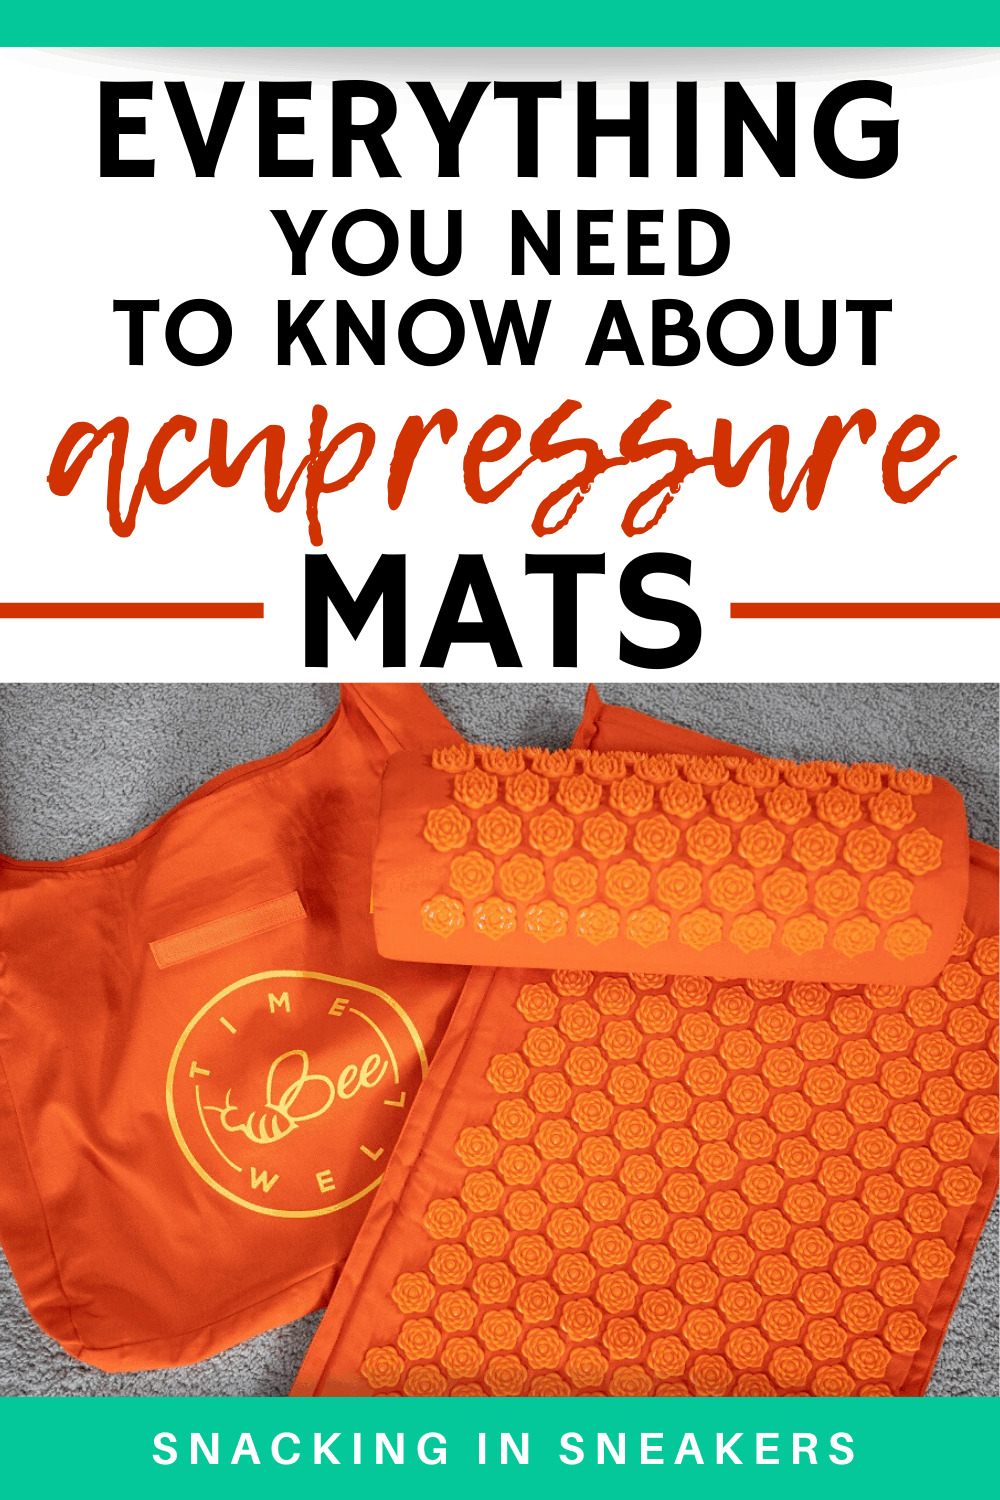 an orange acupressure mat, pillow, and carrying case